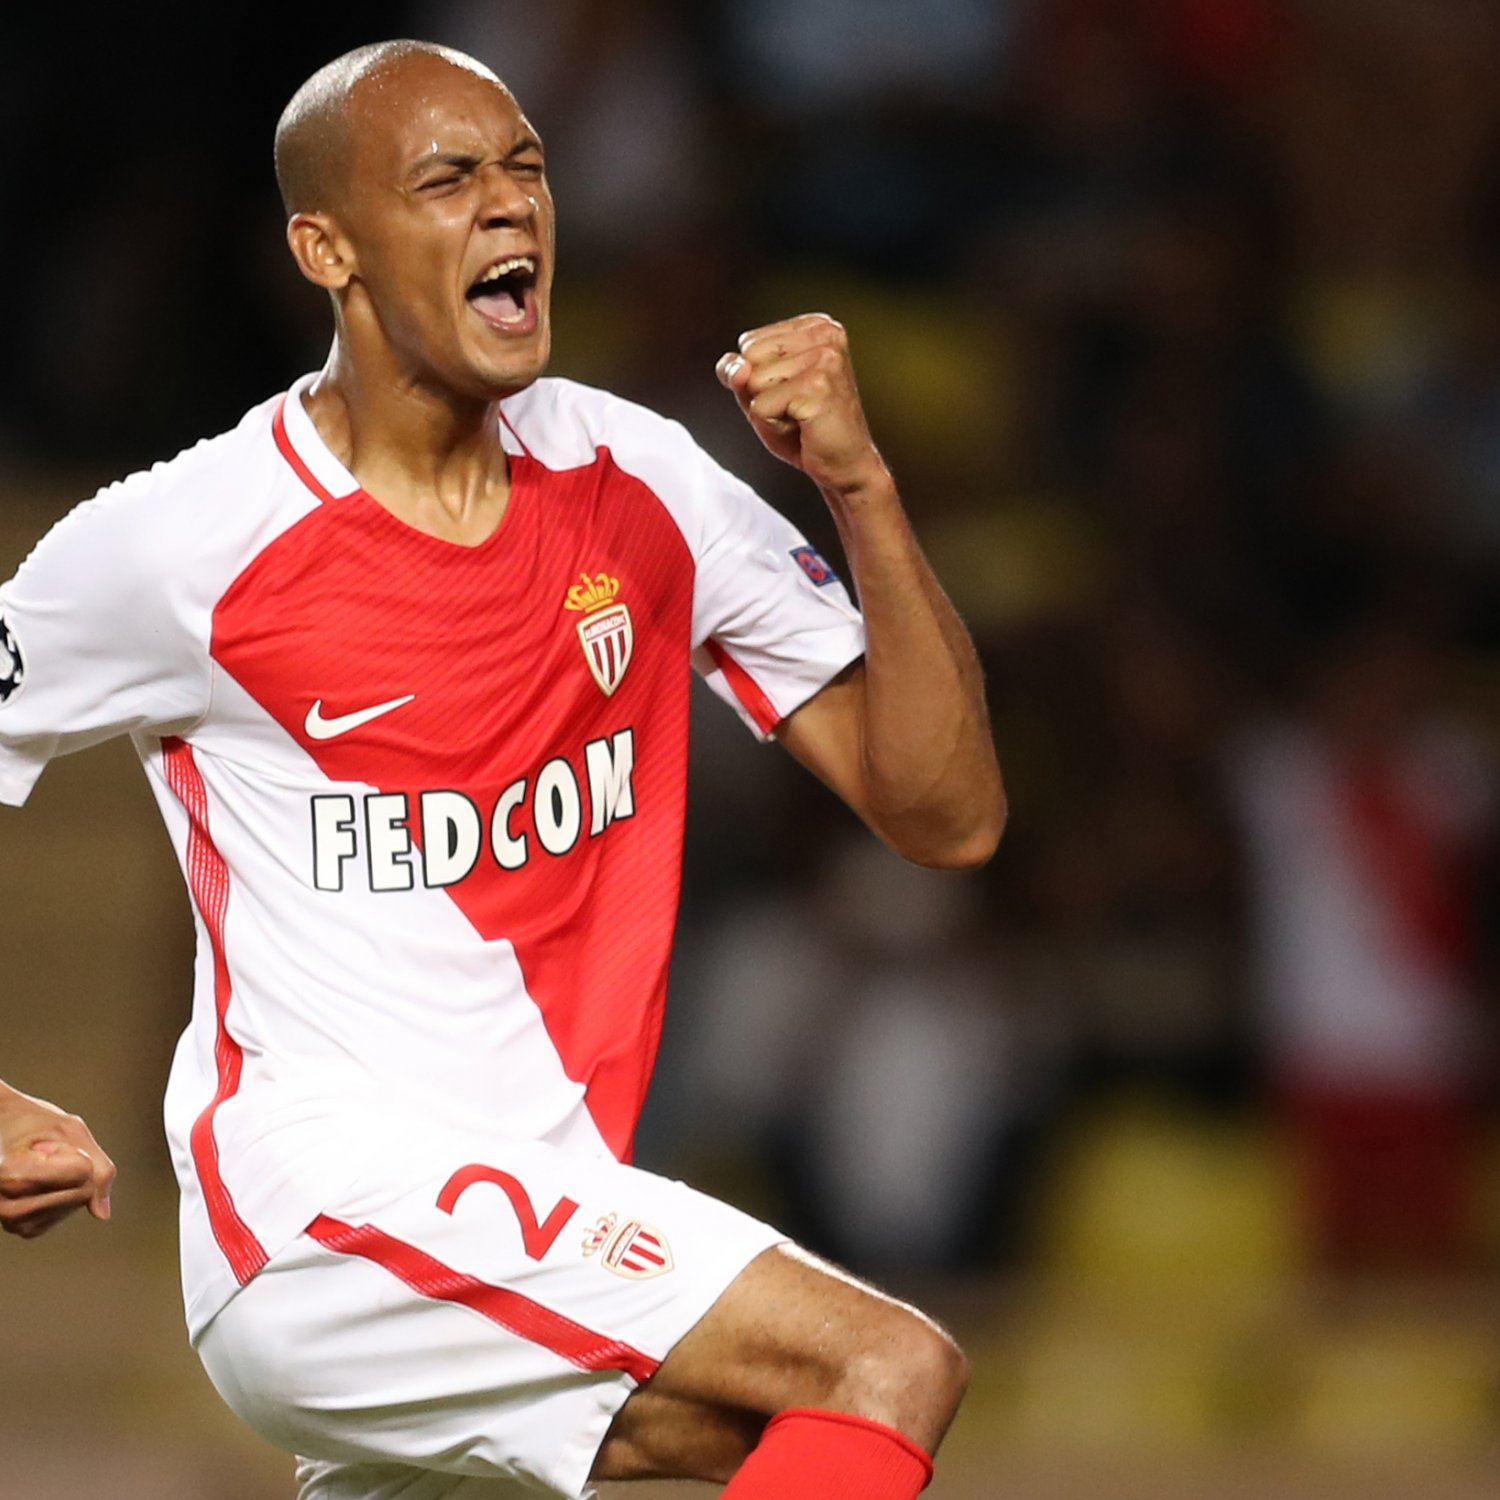 Manchester United Latest Transfer Window: Manchester United Transfer News: Fabinho Price Reportedly